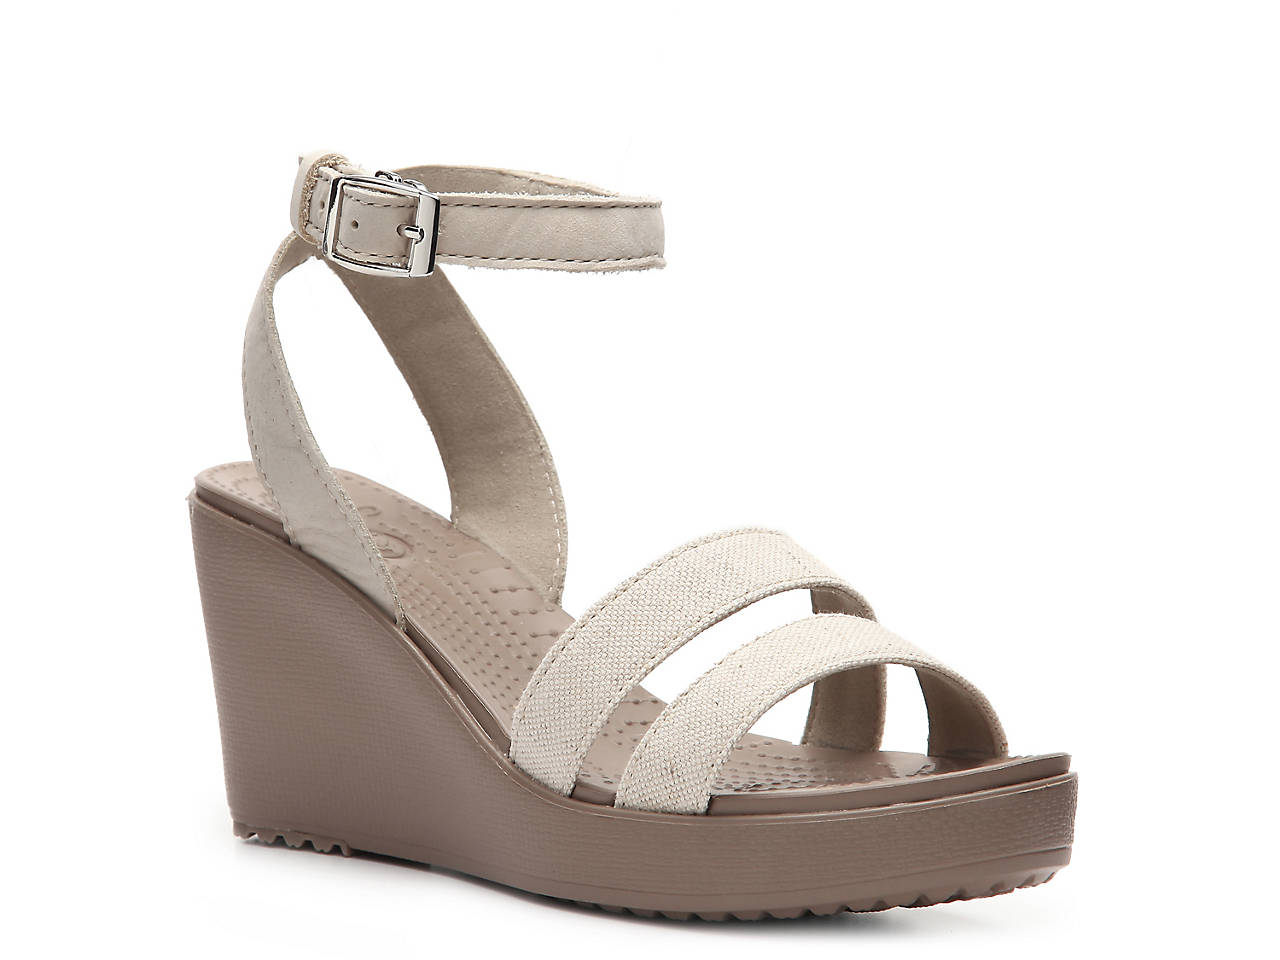 800e840d461285 Crocs Leigh Wedge Sandal Women s Shoes